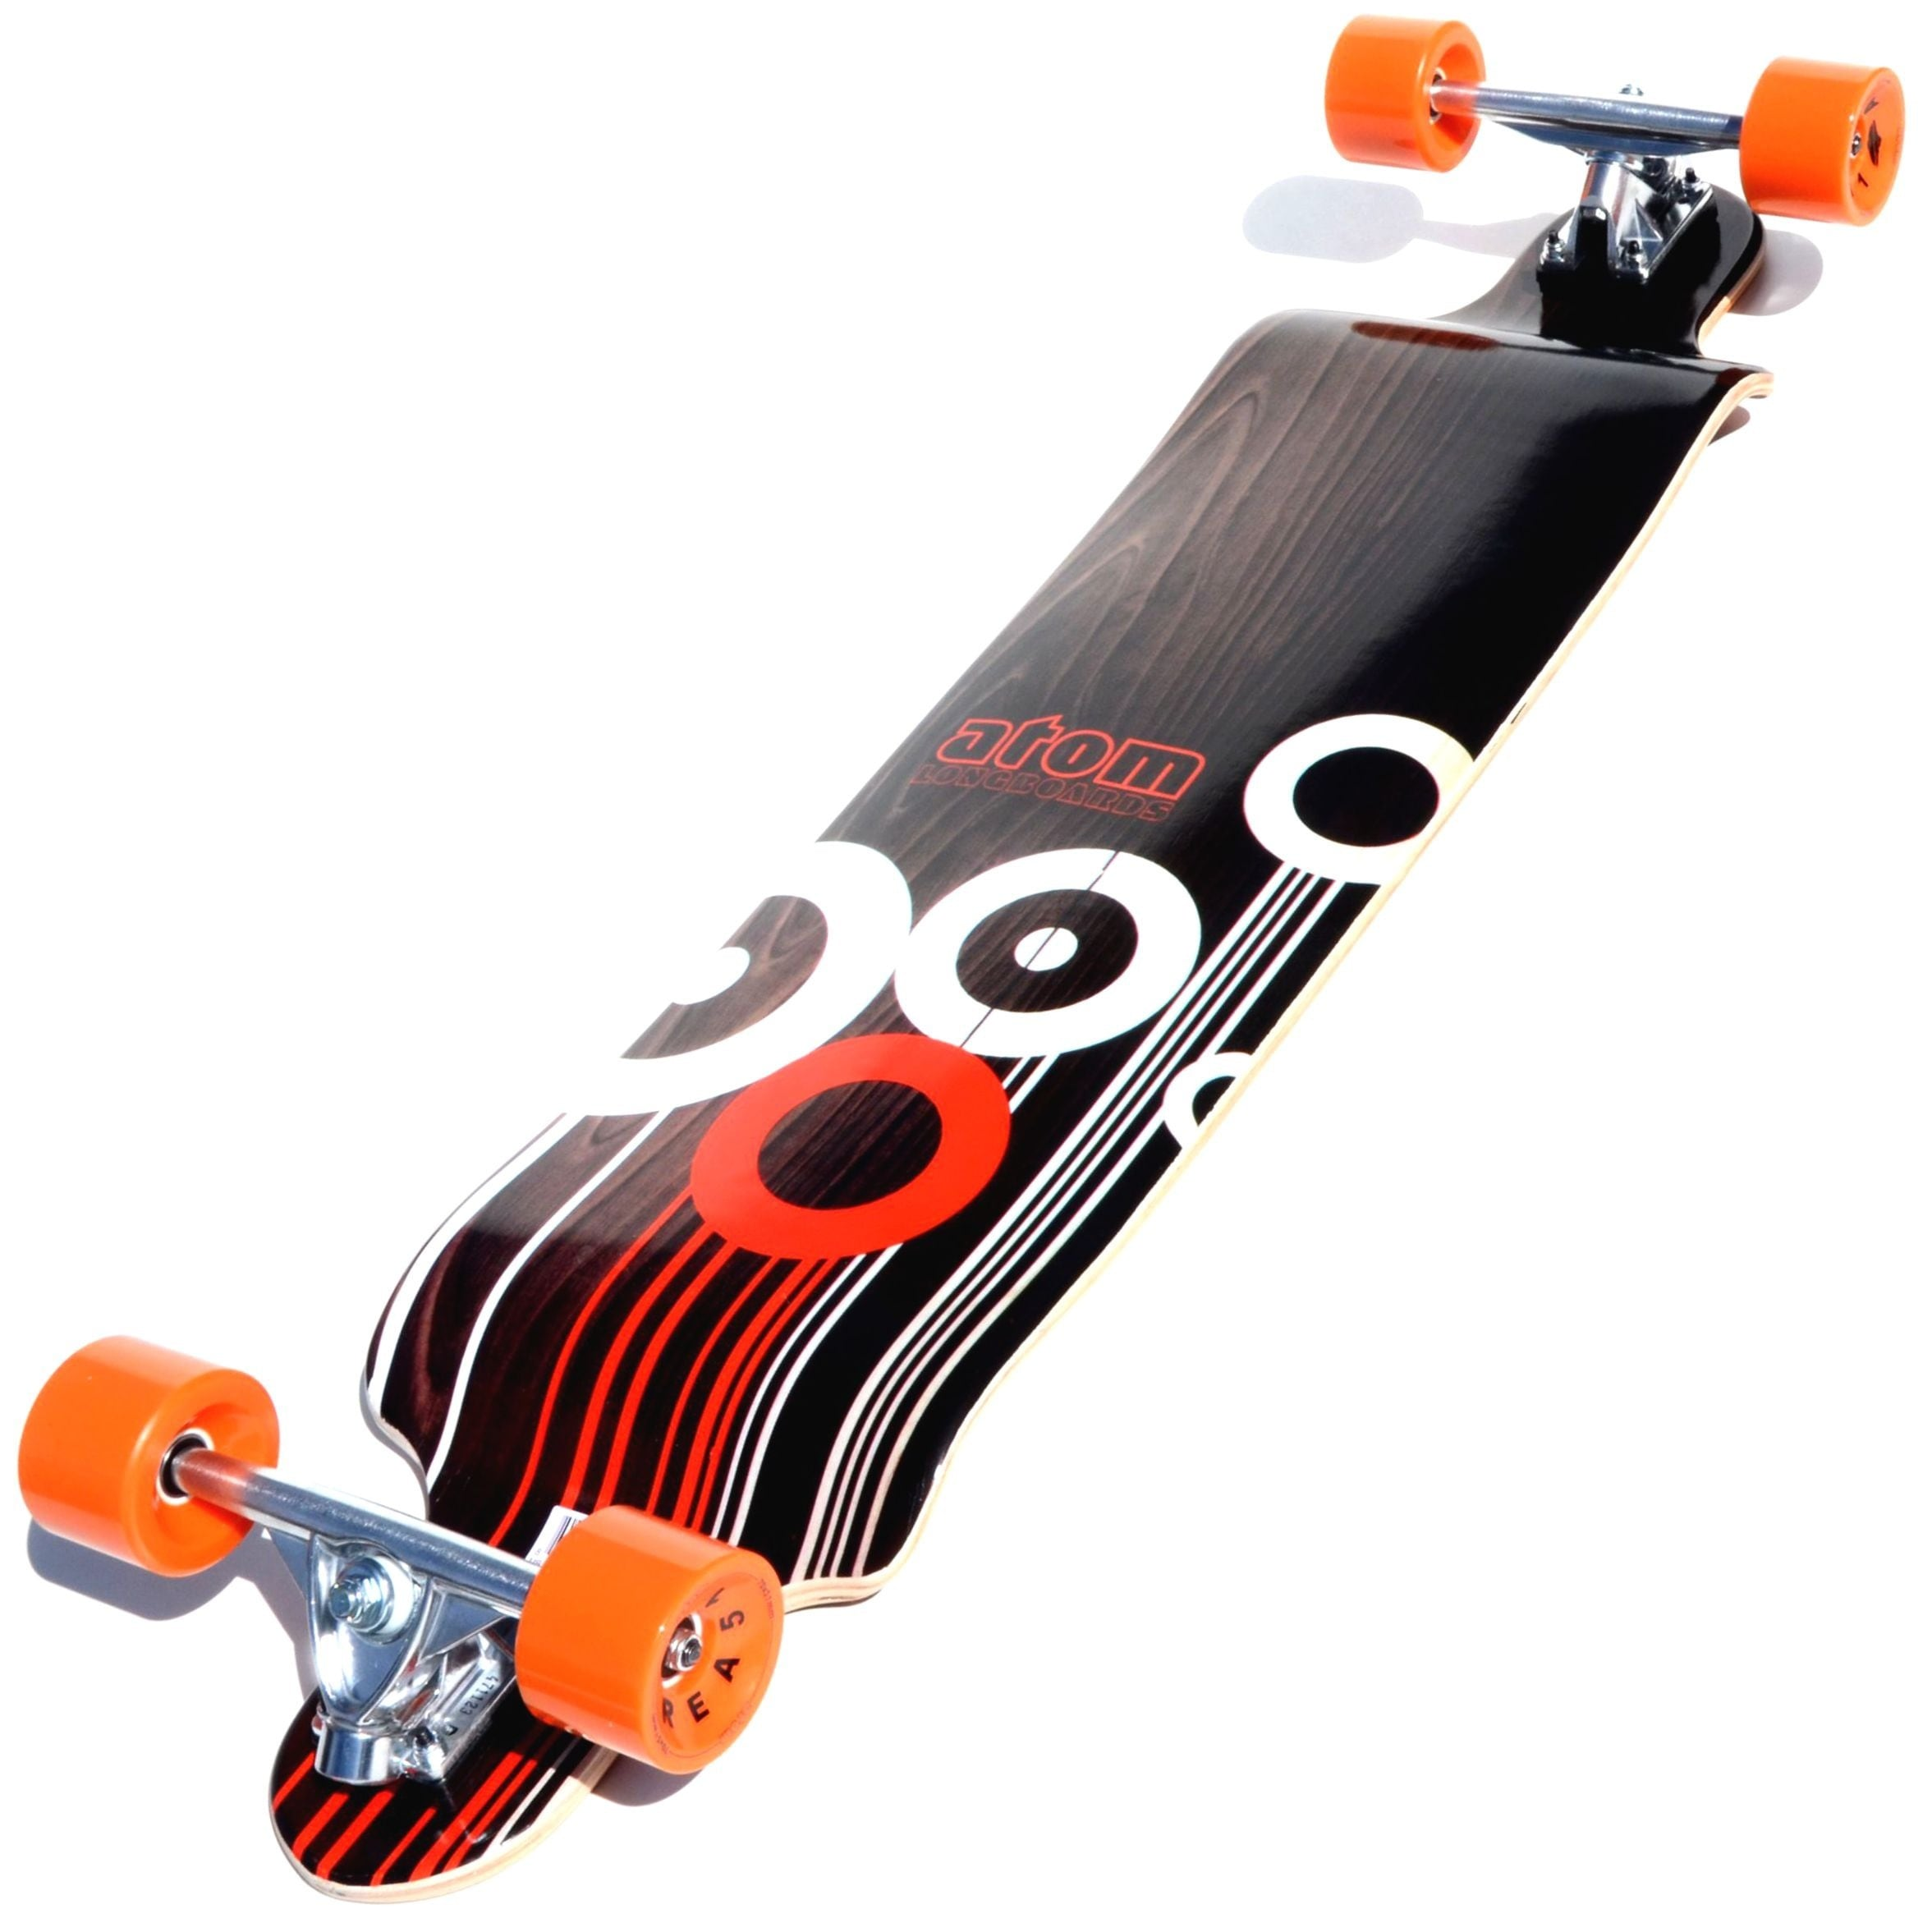 "Atom 41-inch Drop Deck Longboard (Atom 41"" Drop Deck Long..."